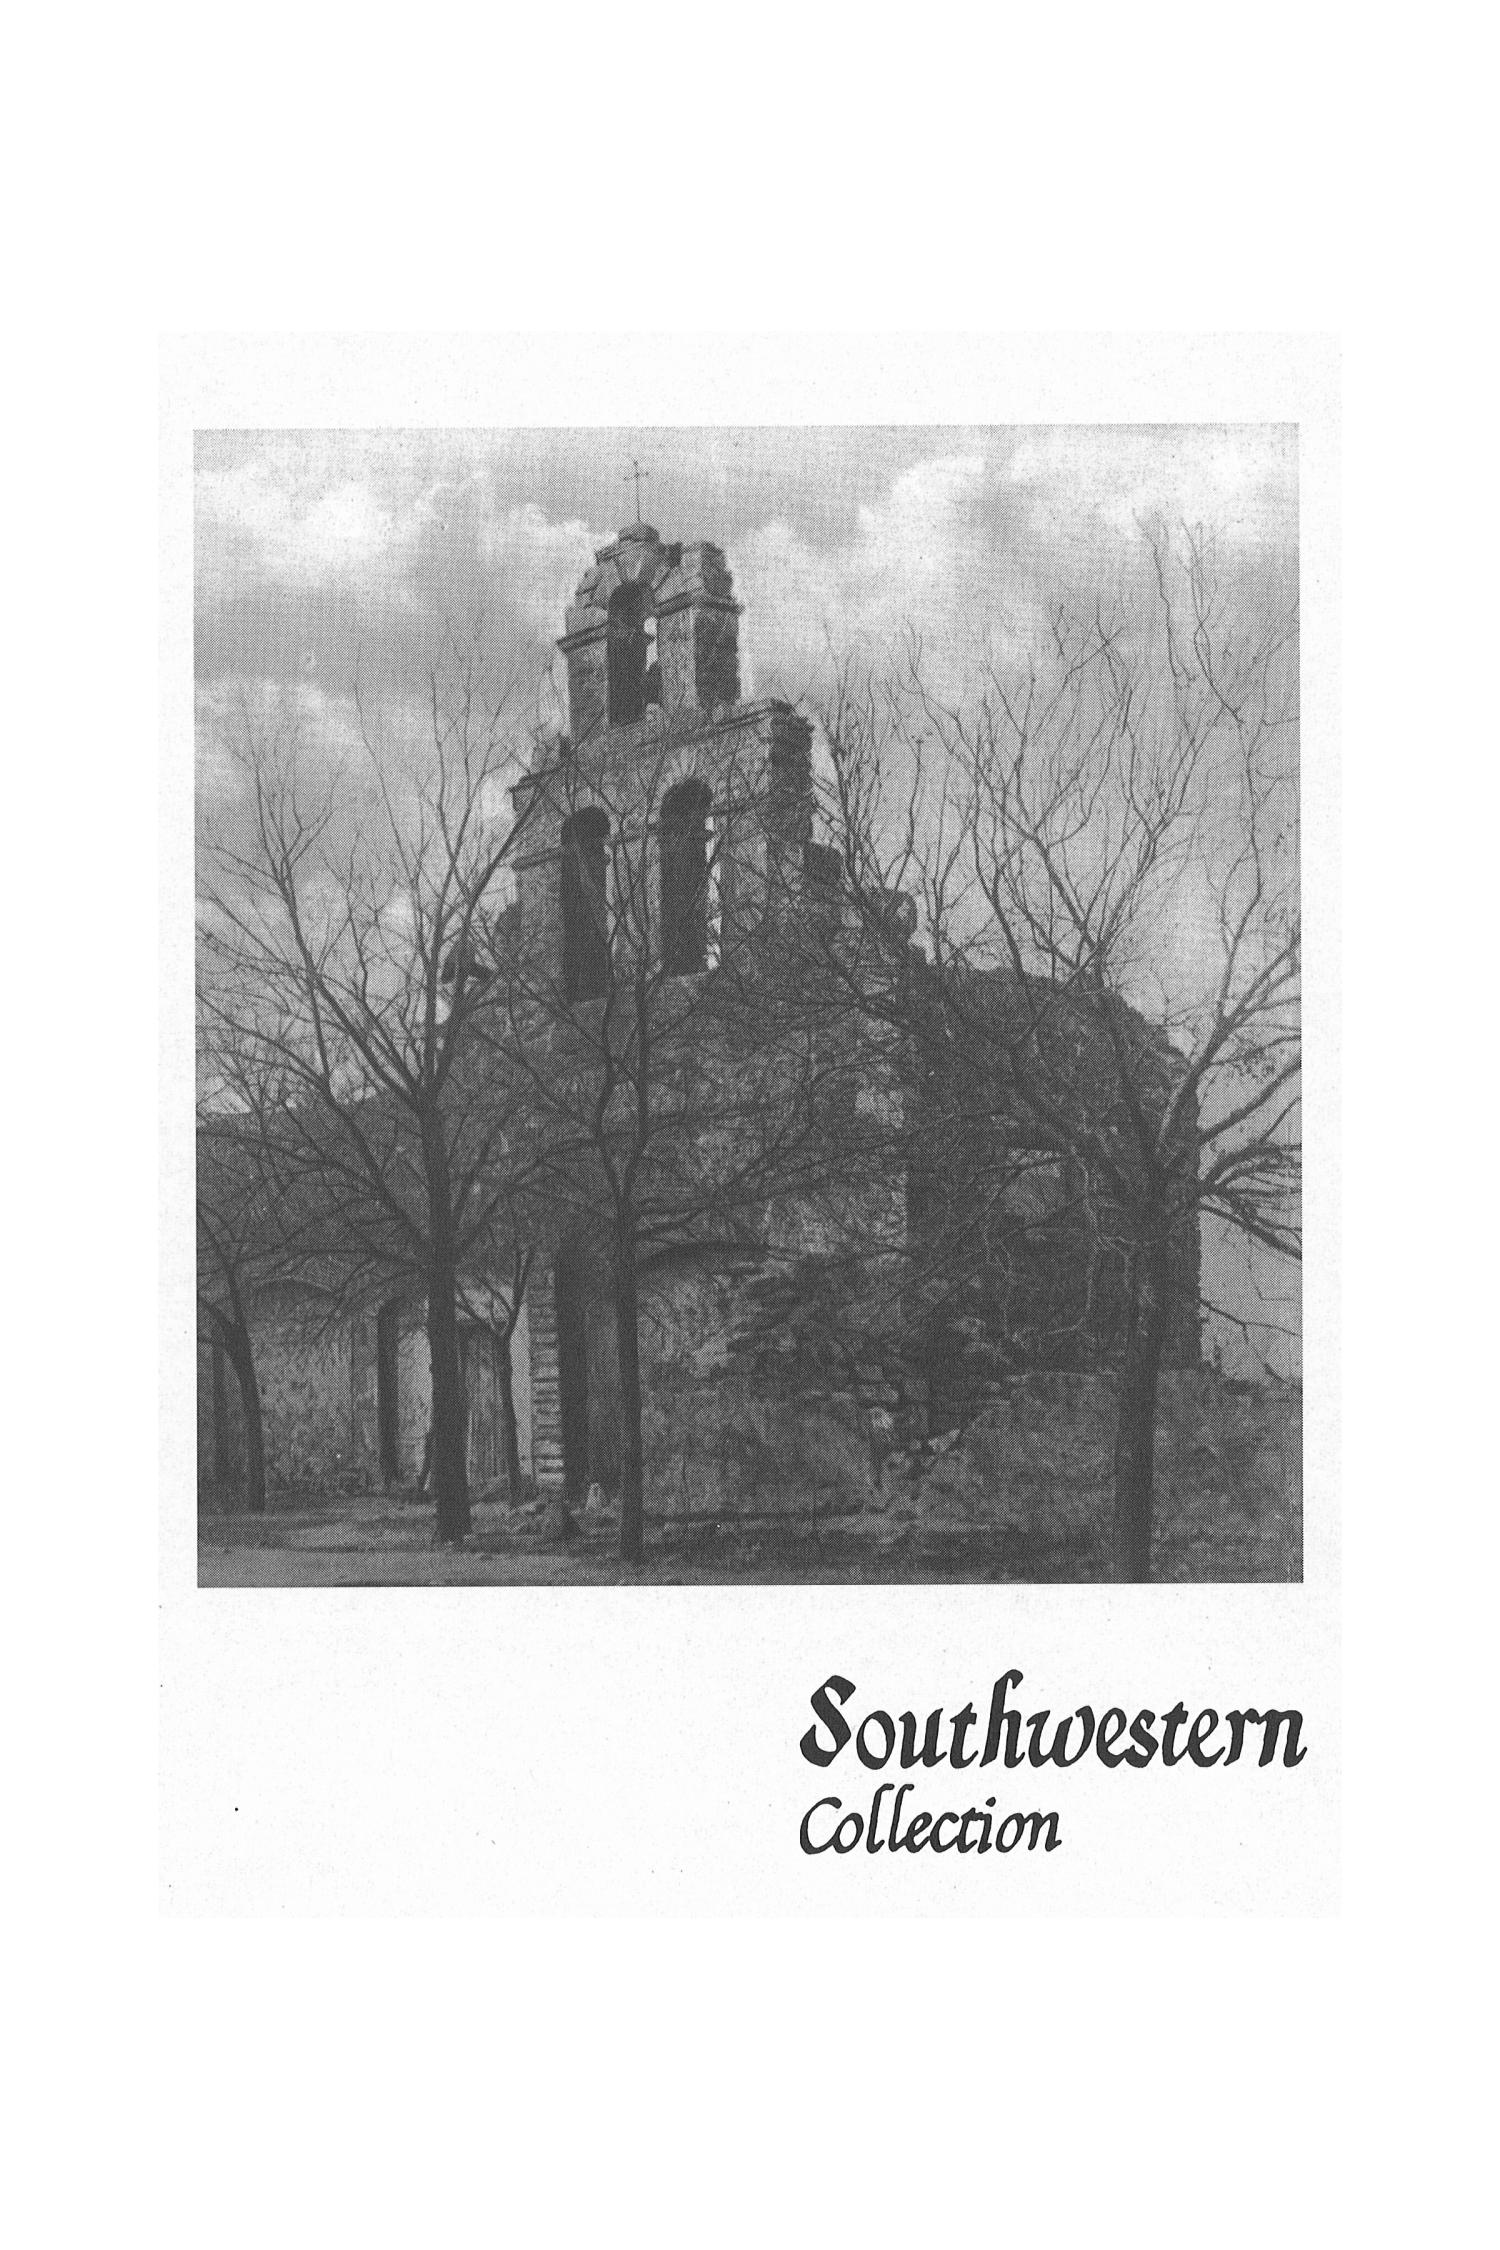 The Southwestern Historical Quarterly, Volume 106, July 2002 - April, 2003                                                                                                      443